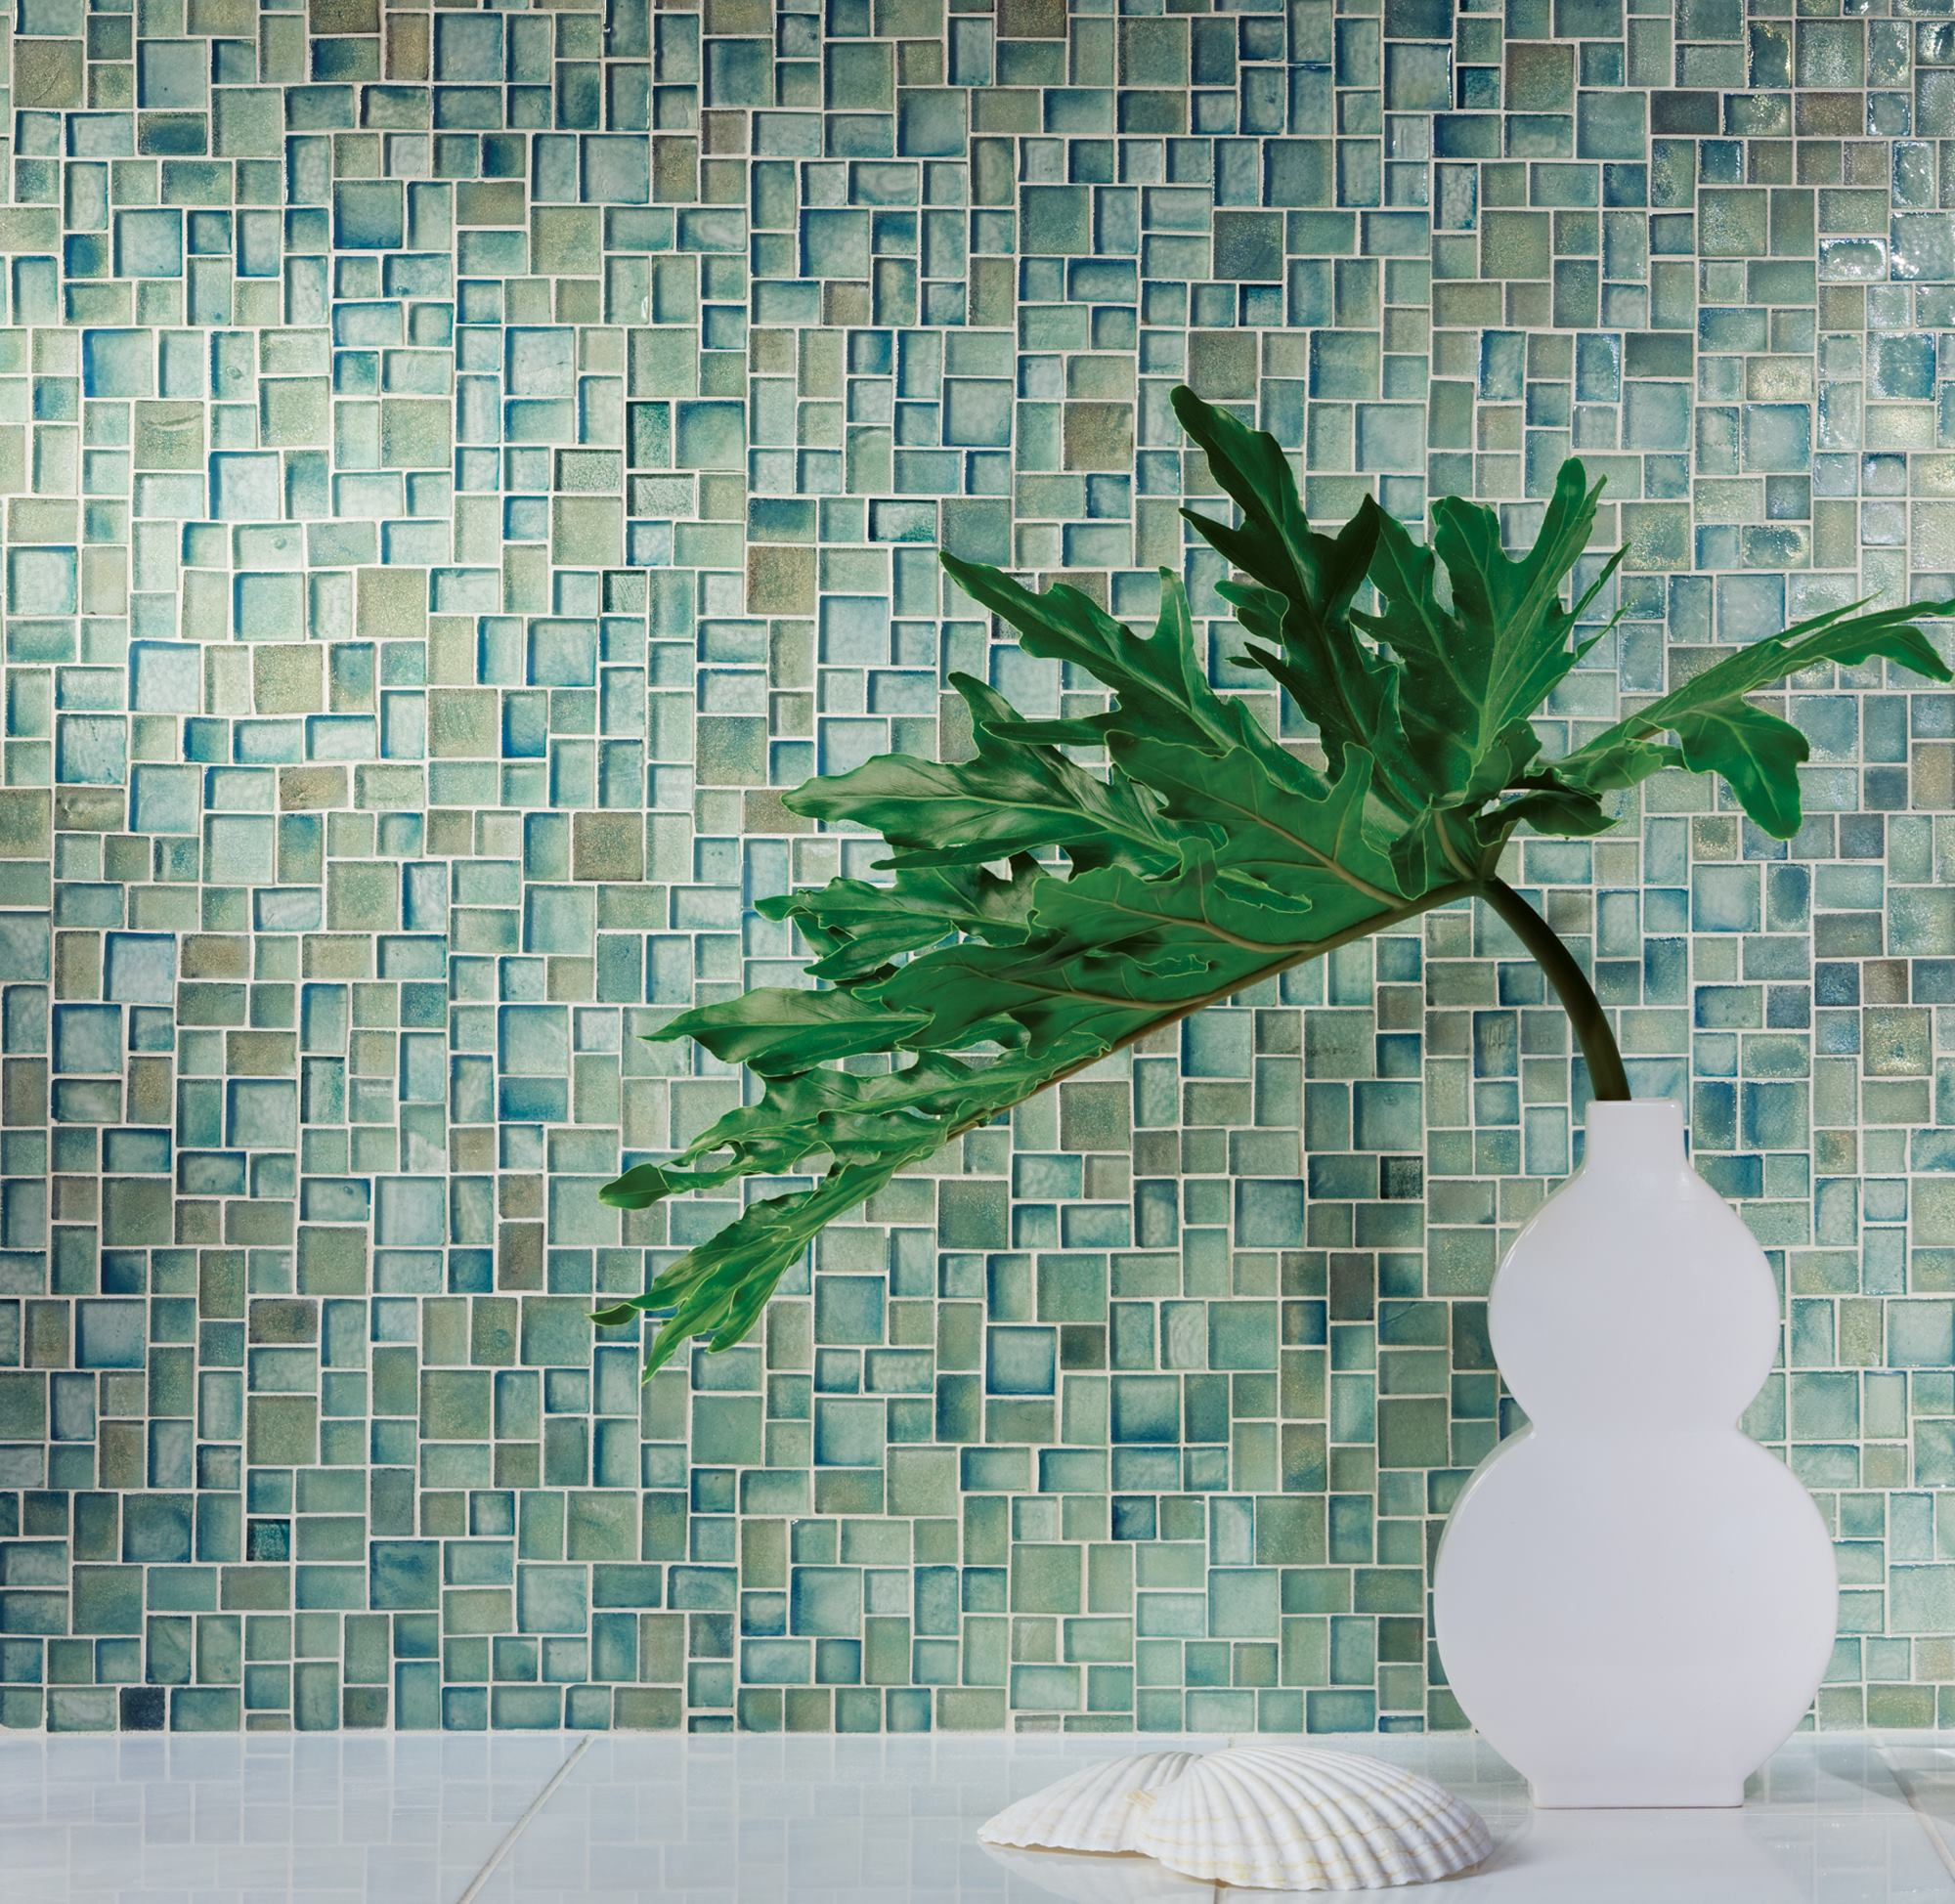 86 Percent Recycled Content Tile From Oceanside Glasstile